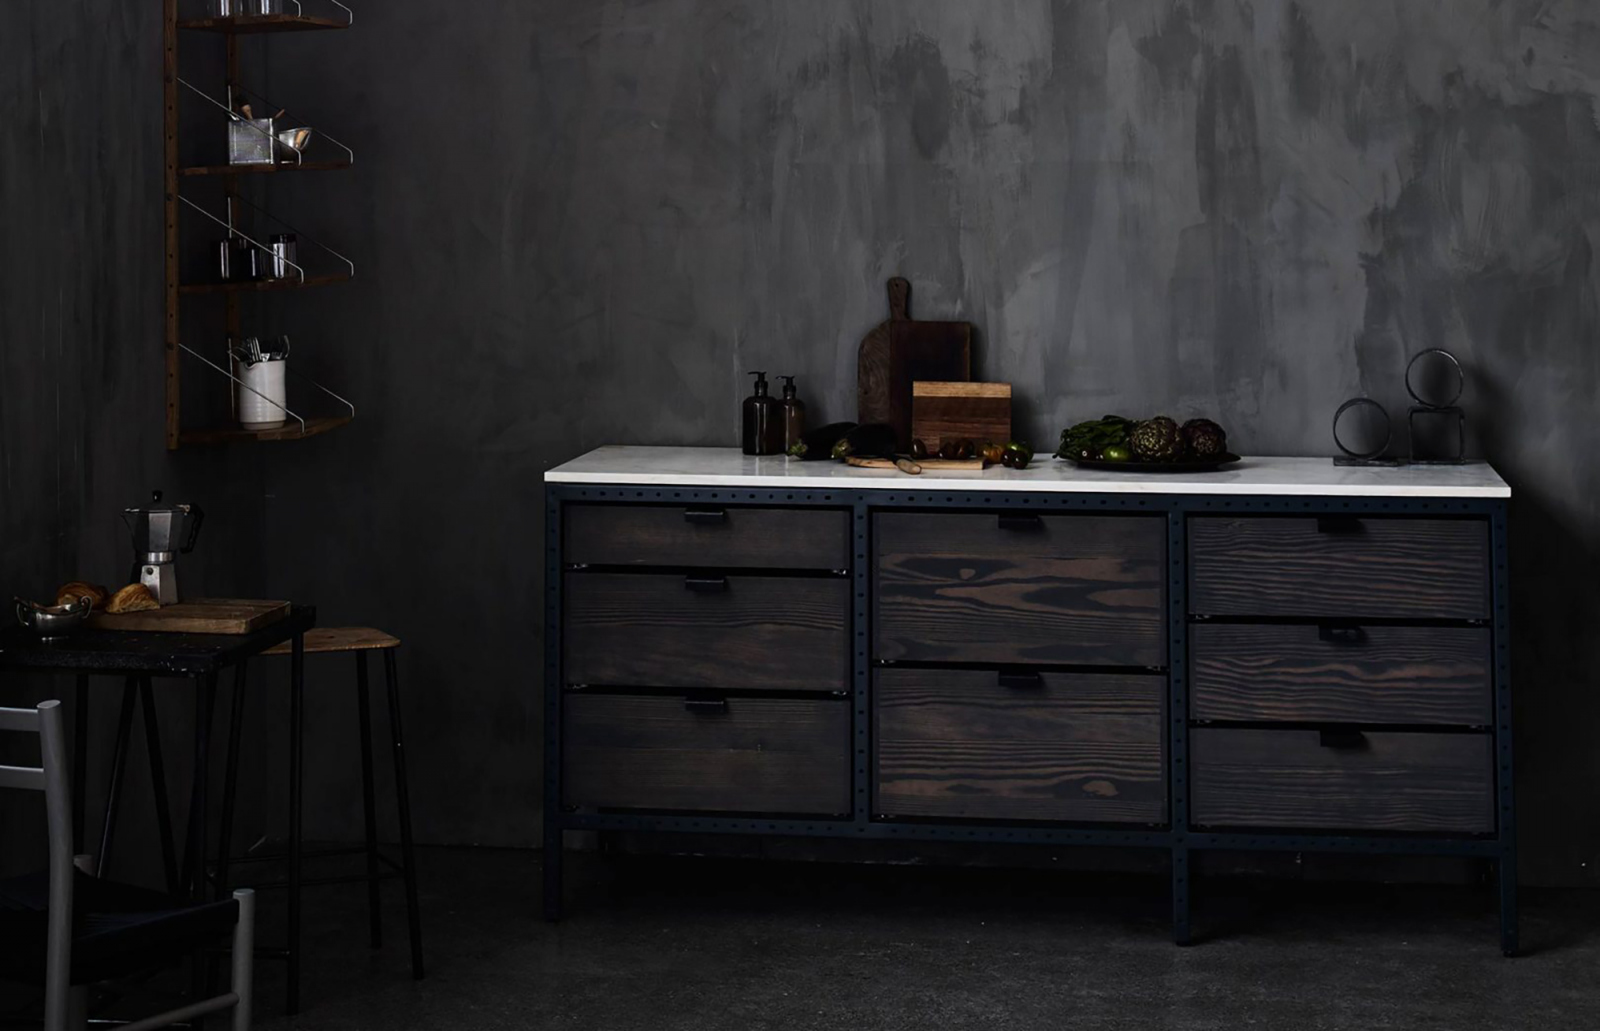 The kitchen is available in Raw and Ash finish.